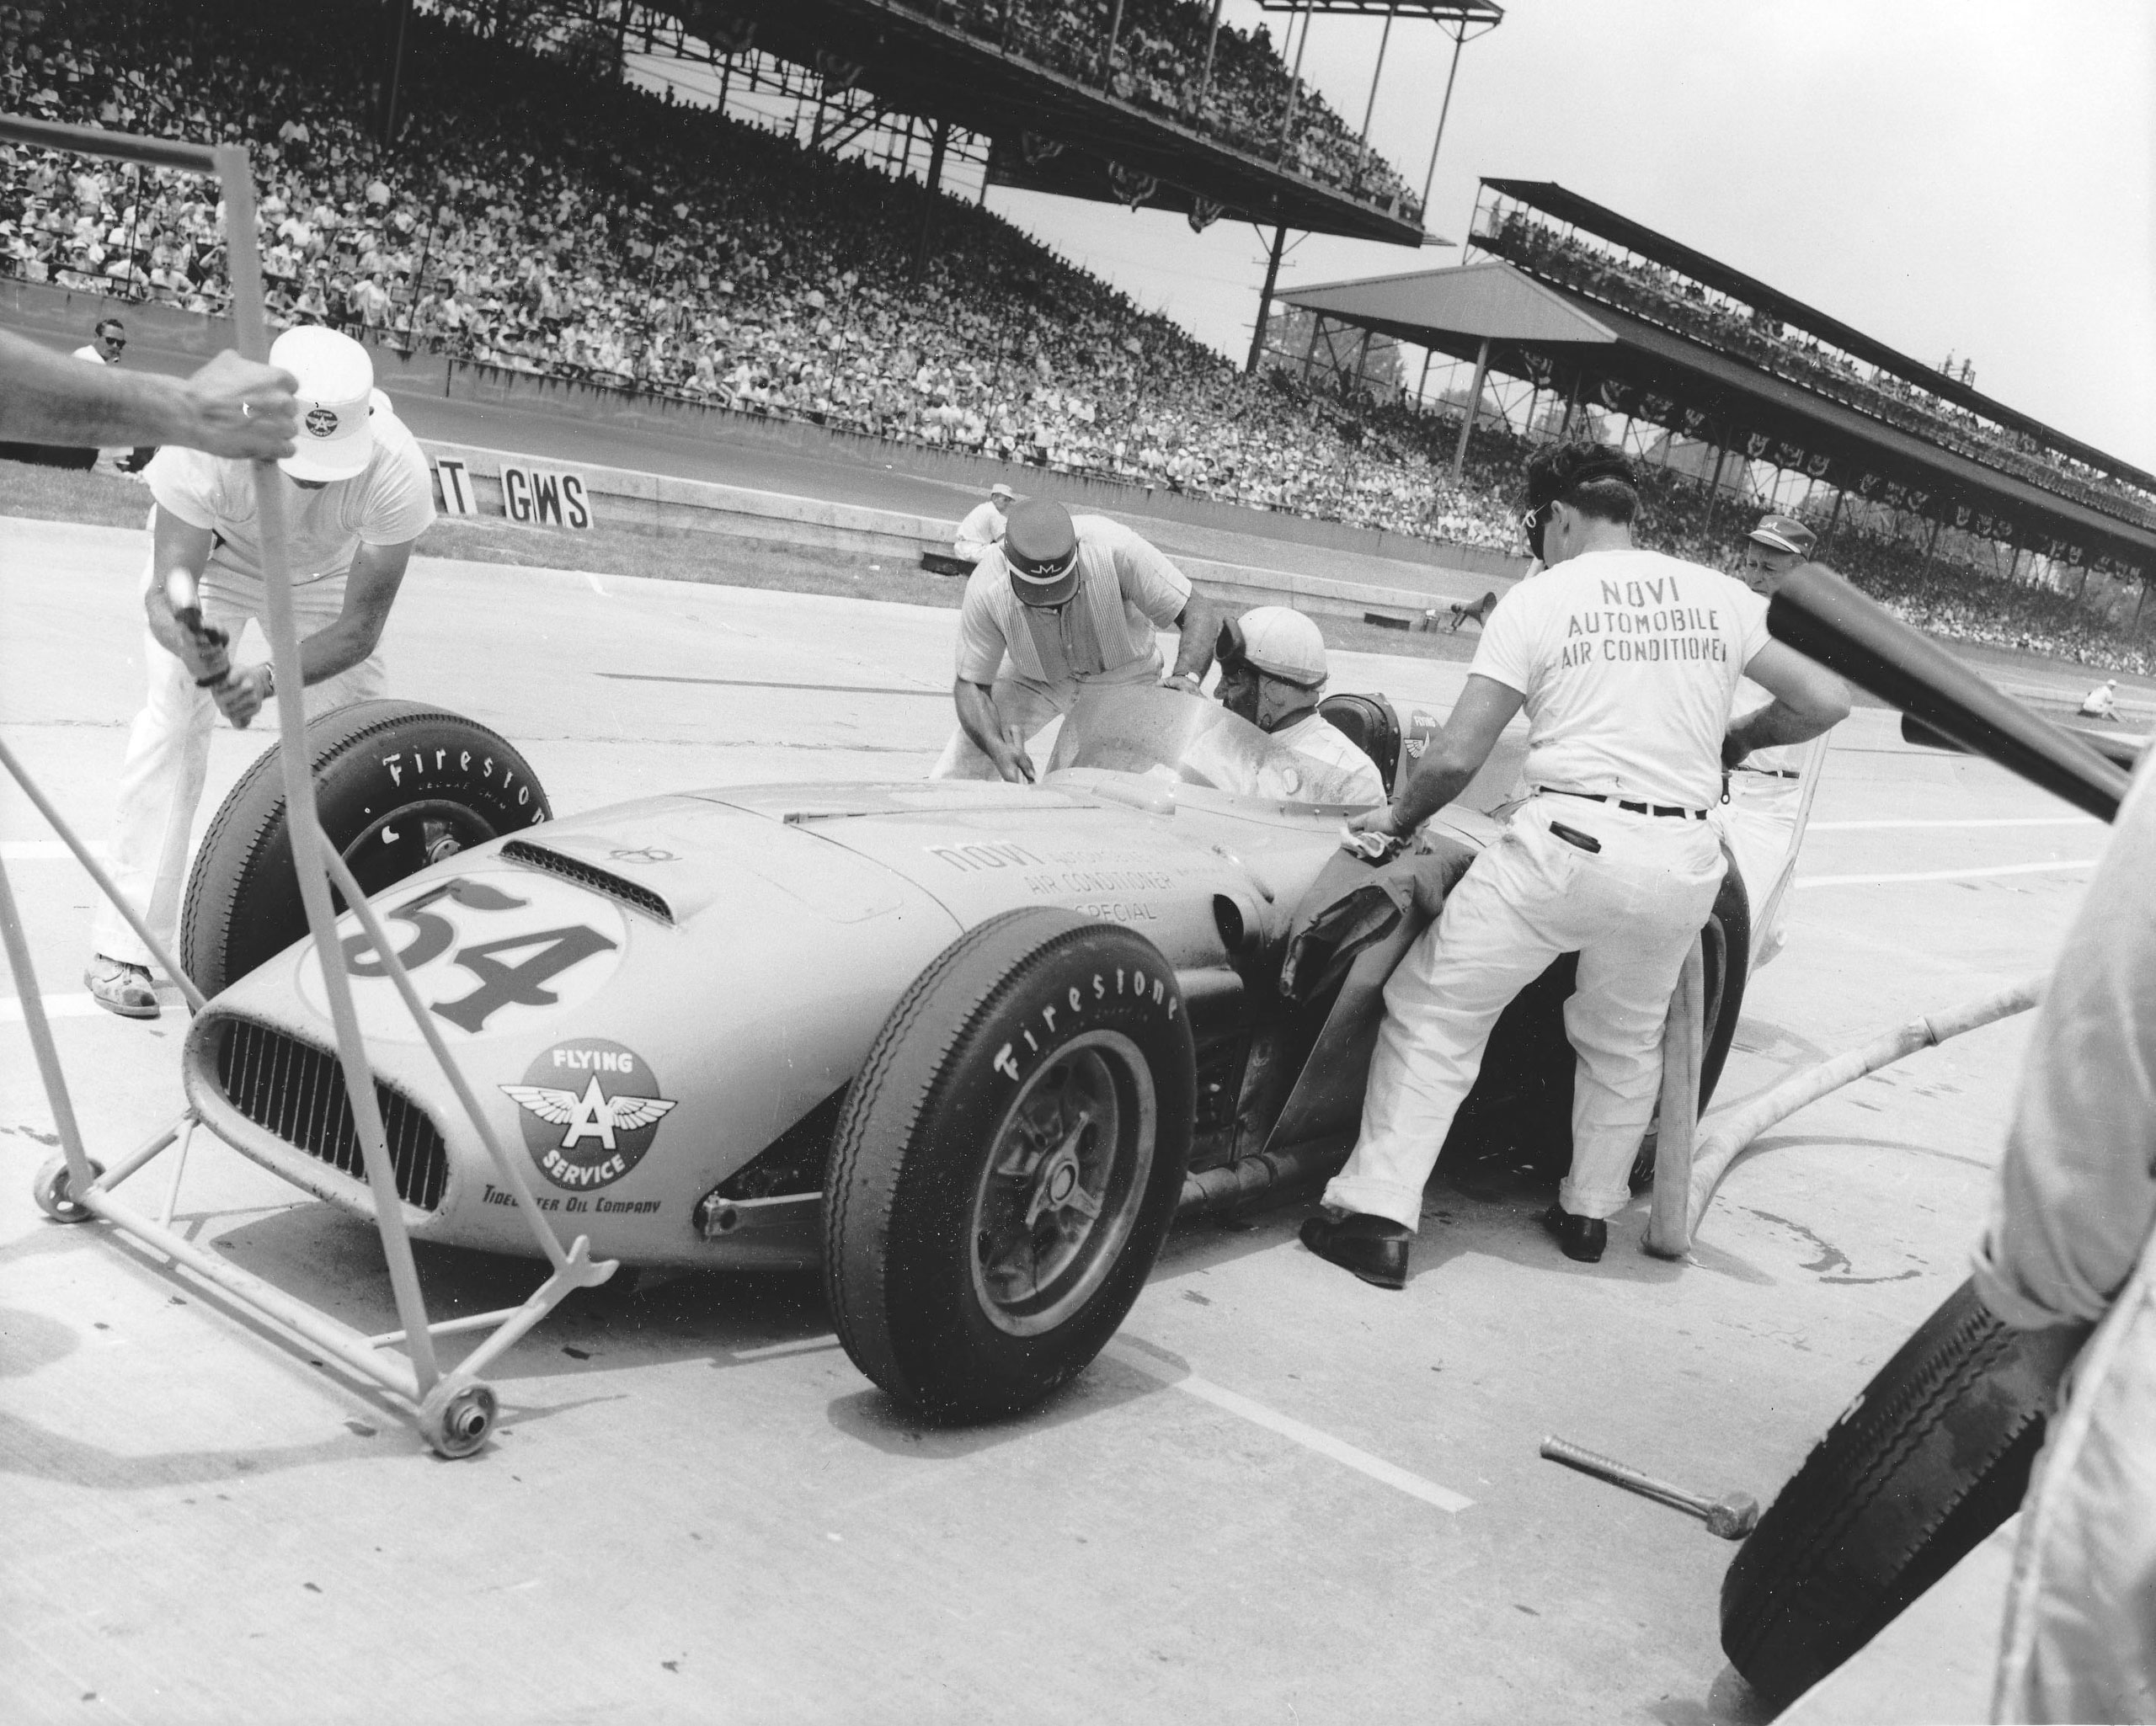 Duke Nalon makes a pit stop during the running of the Indianapolis 500 Indy Car race at Indianapolis Motor Speedway on May 30, 1948. Driving a 1947 Kurtis/Offenhauser owned by Lou Welch, Nalon finished third in the event.